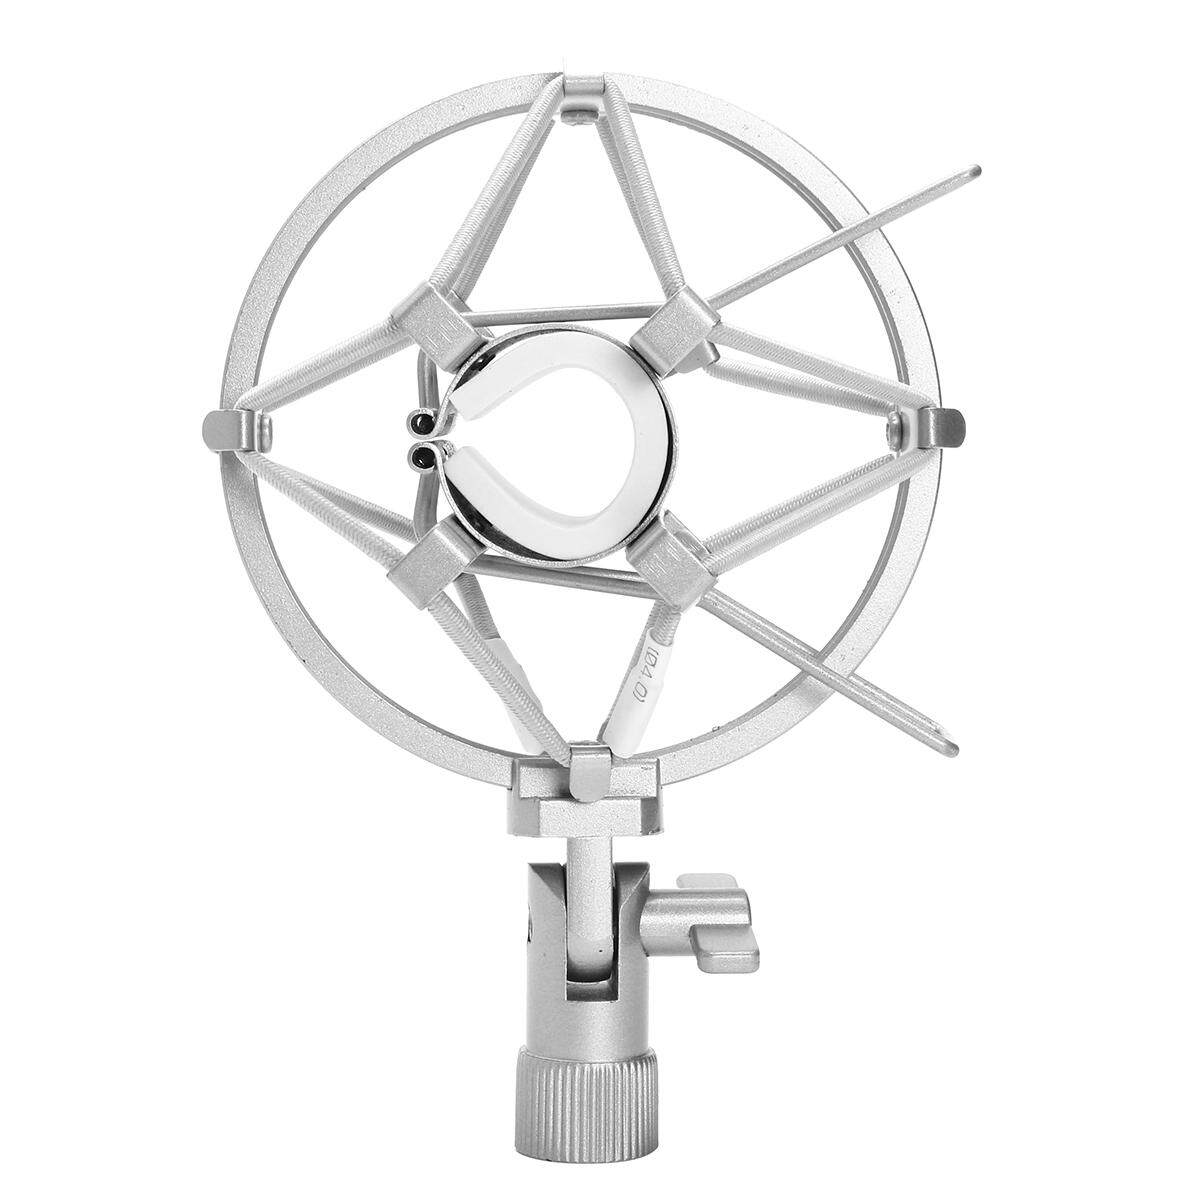 Black Mic Shock Mount For Small Diameter Microphone 22mm-24mm Sliver By Glimmer.